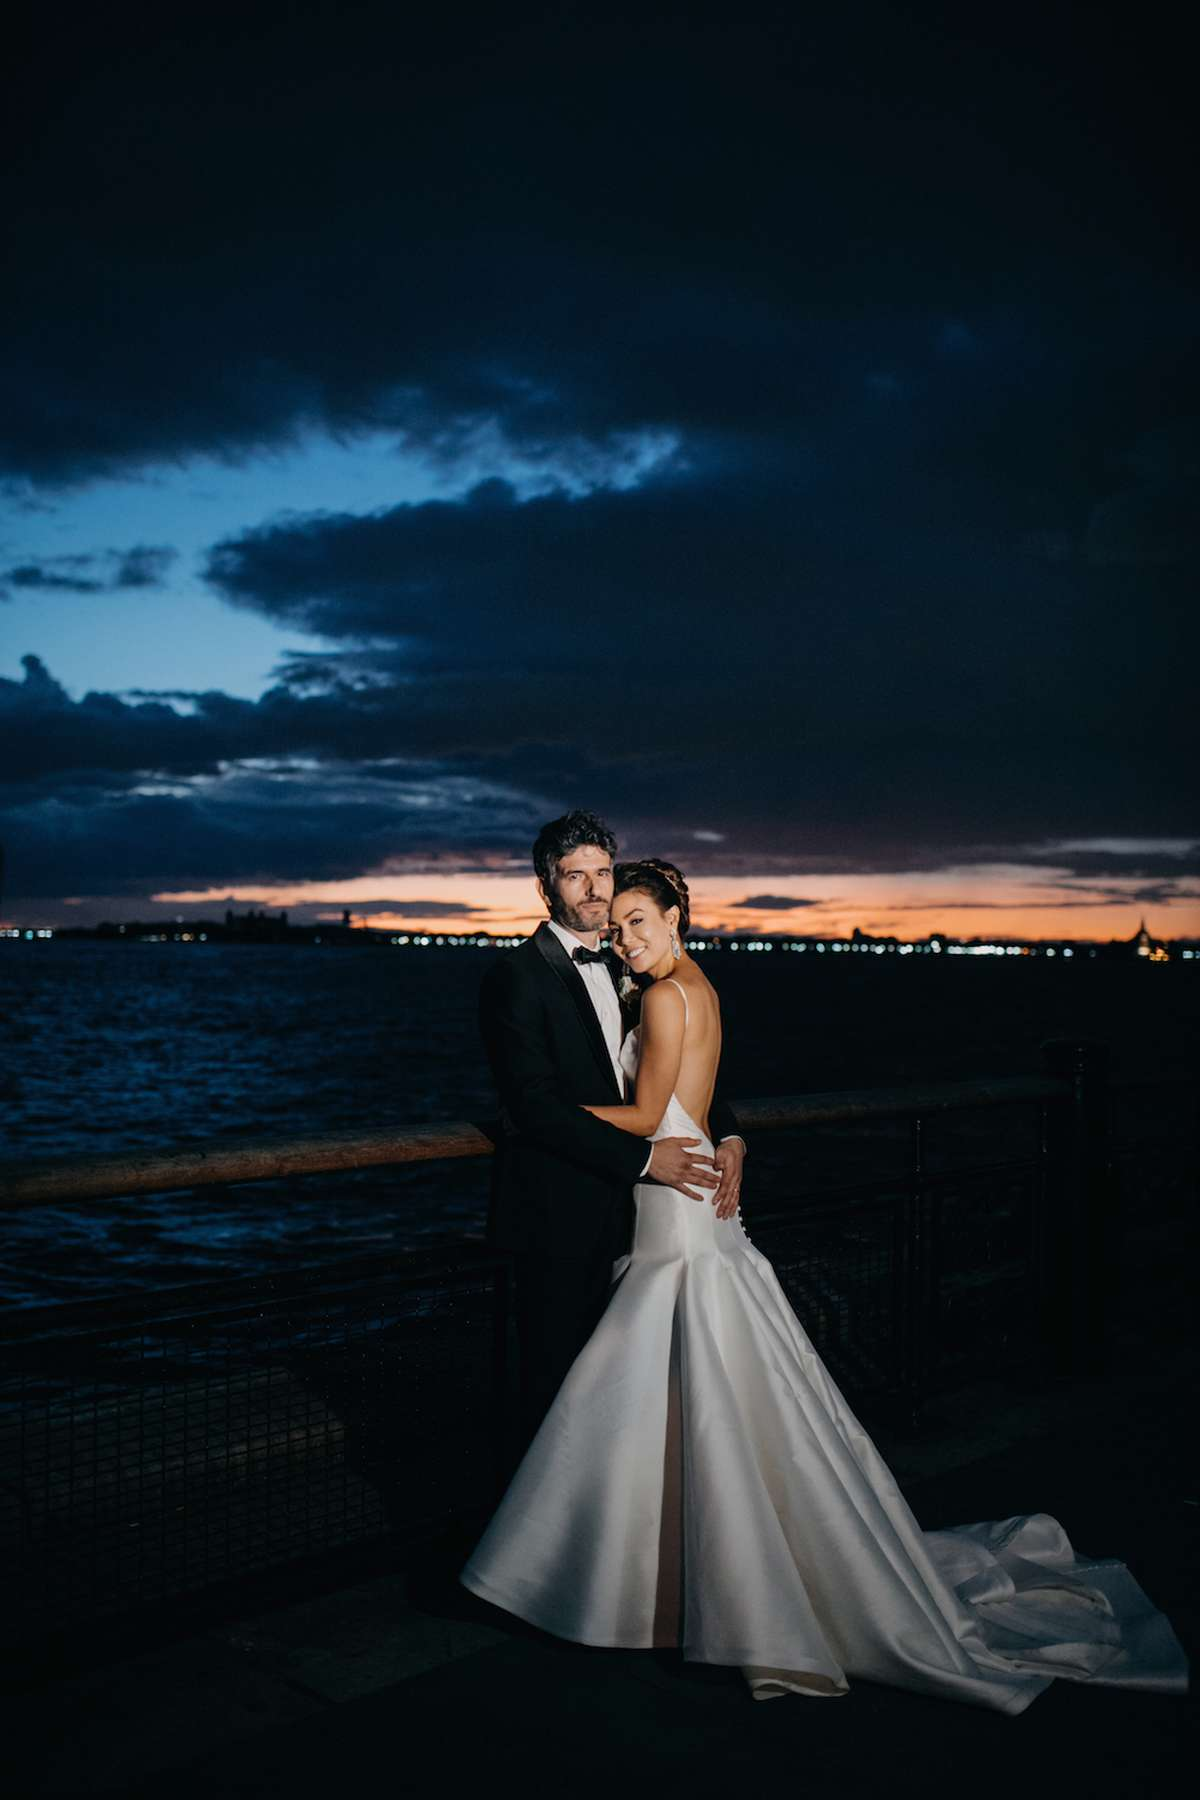 new york bridal photoshoot with bachelor shoreline joint at sunset